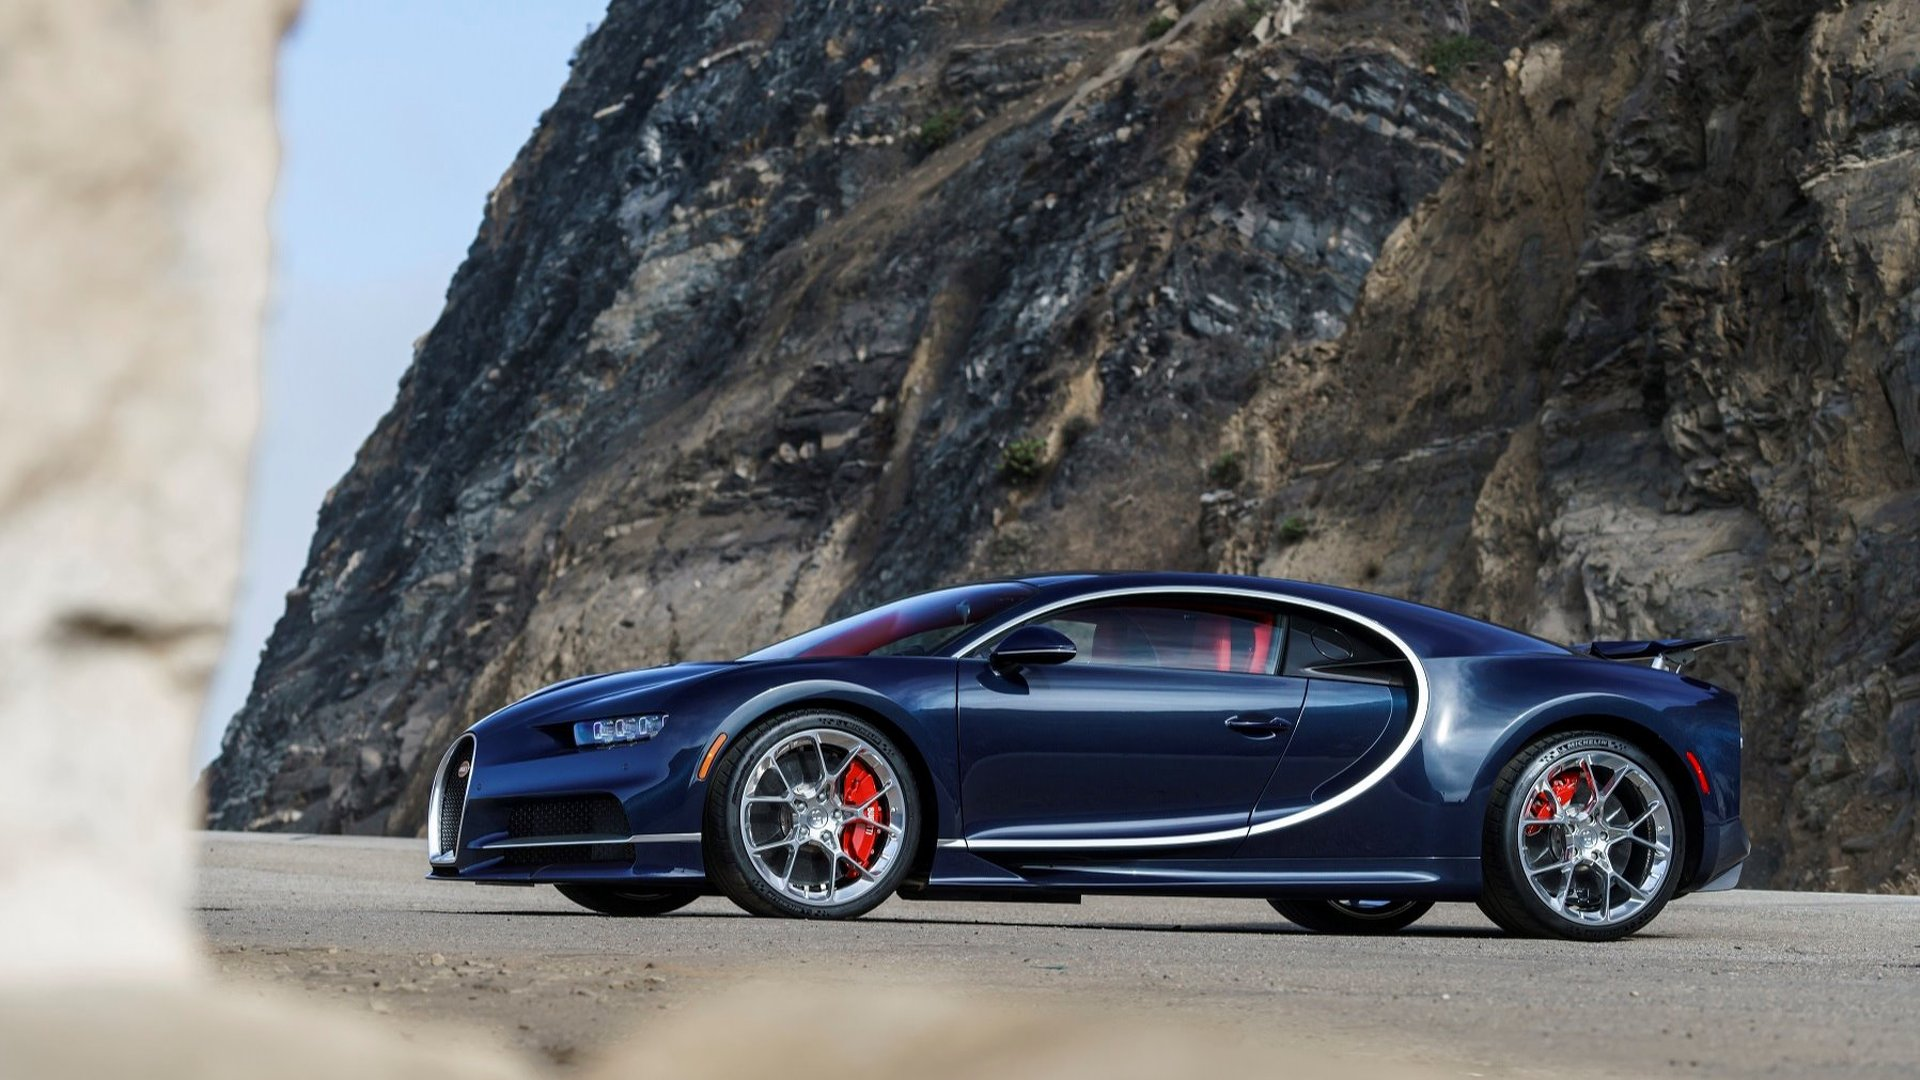 Bugatti Chiron capable of 285 mph without limiter